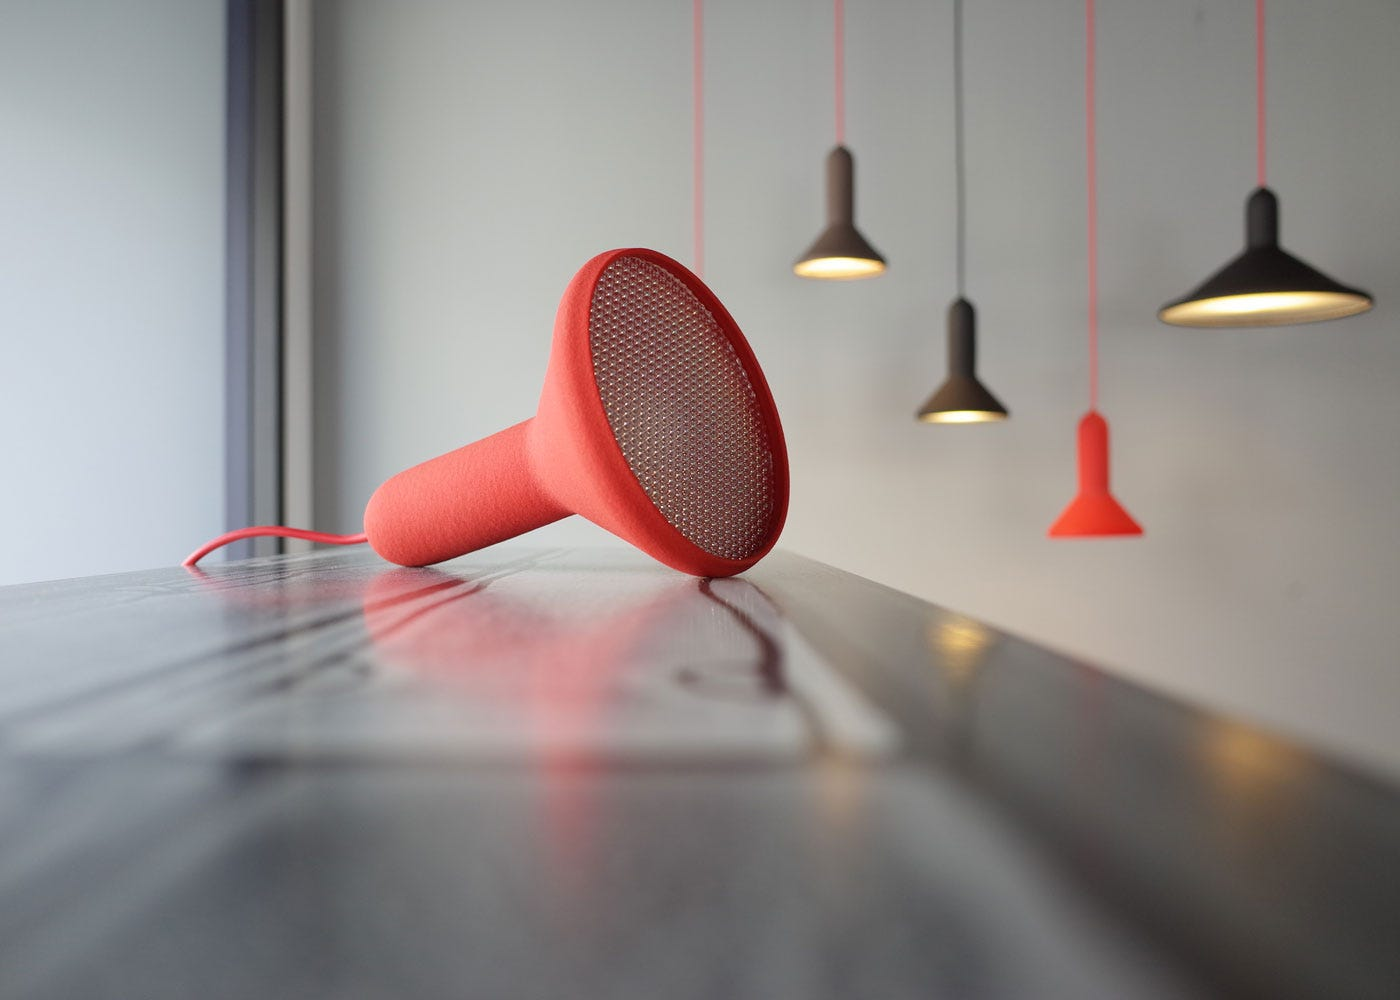 As shown: Torch T1 Table lamp in red.